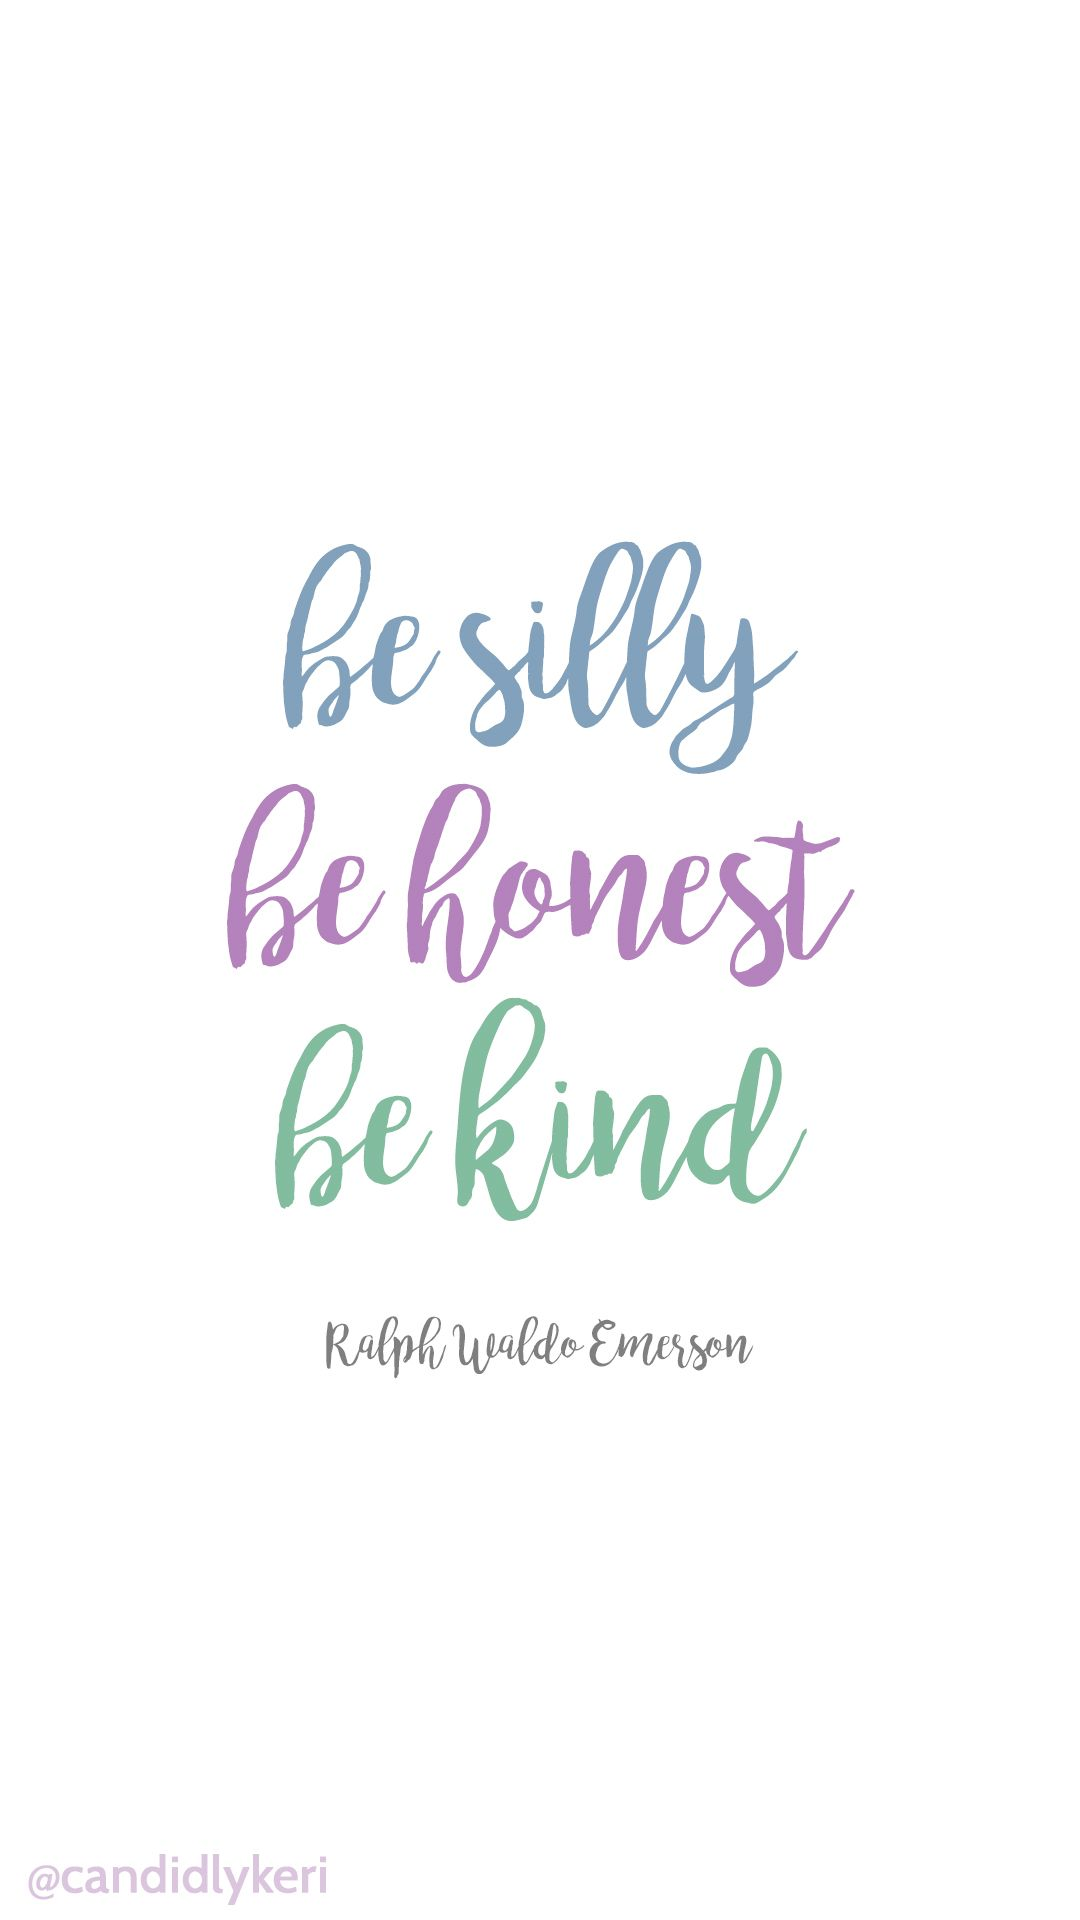 Awesome Be Silly Be Honest Be Kind Emerson Quote Background Wallpaper You Can  Download For Free On The Blog! For Any Device; Mobile, Desktop, Iphone,  Android!